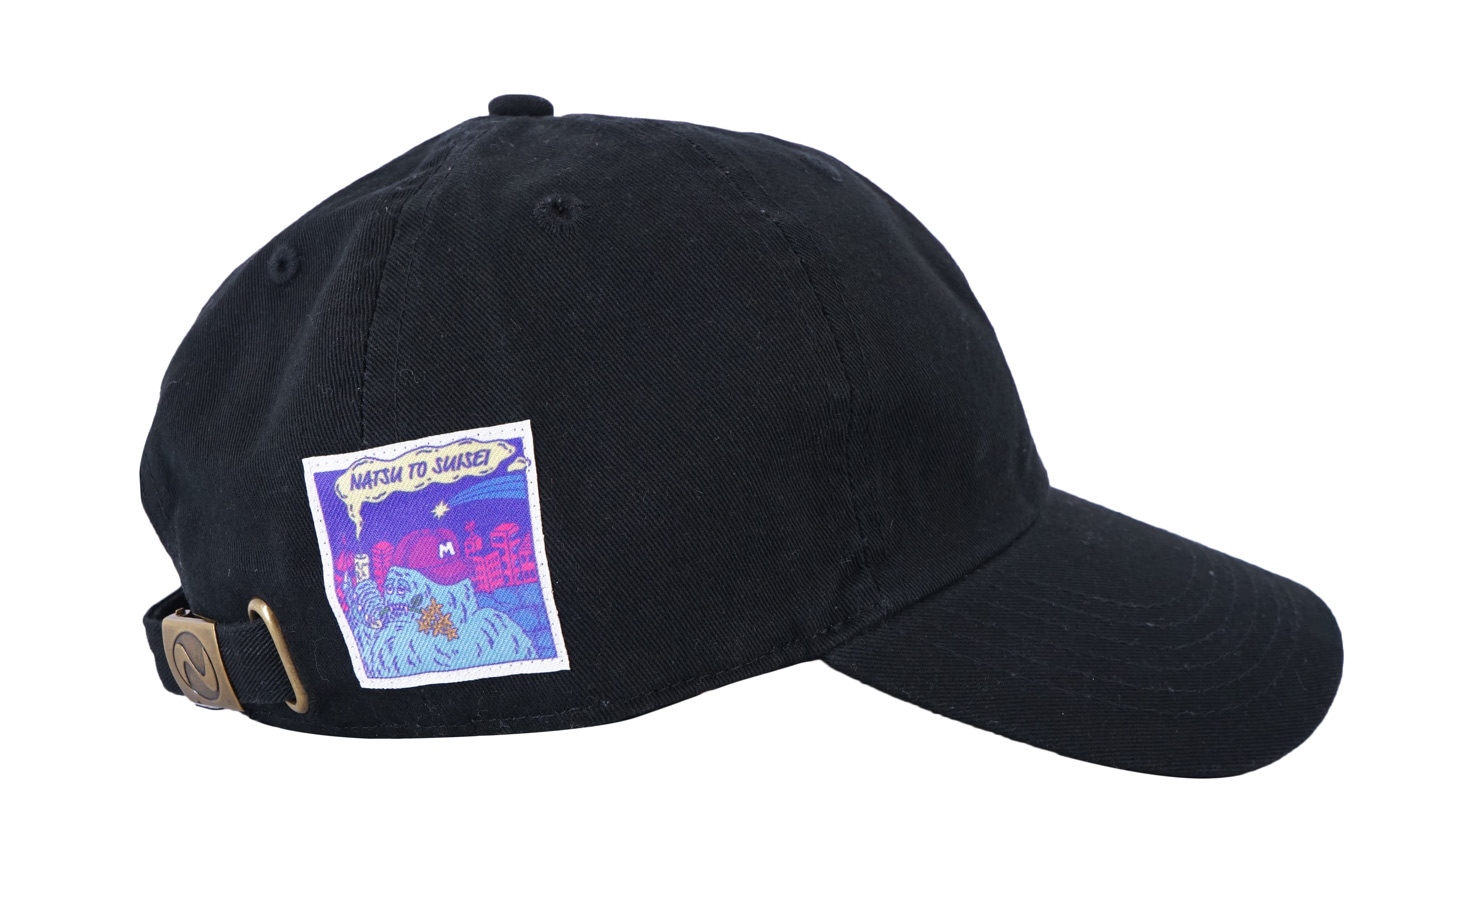 MONSTERS CAP(Black)